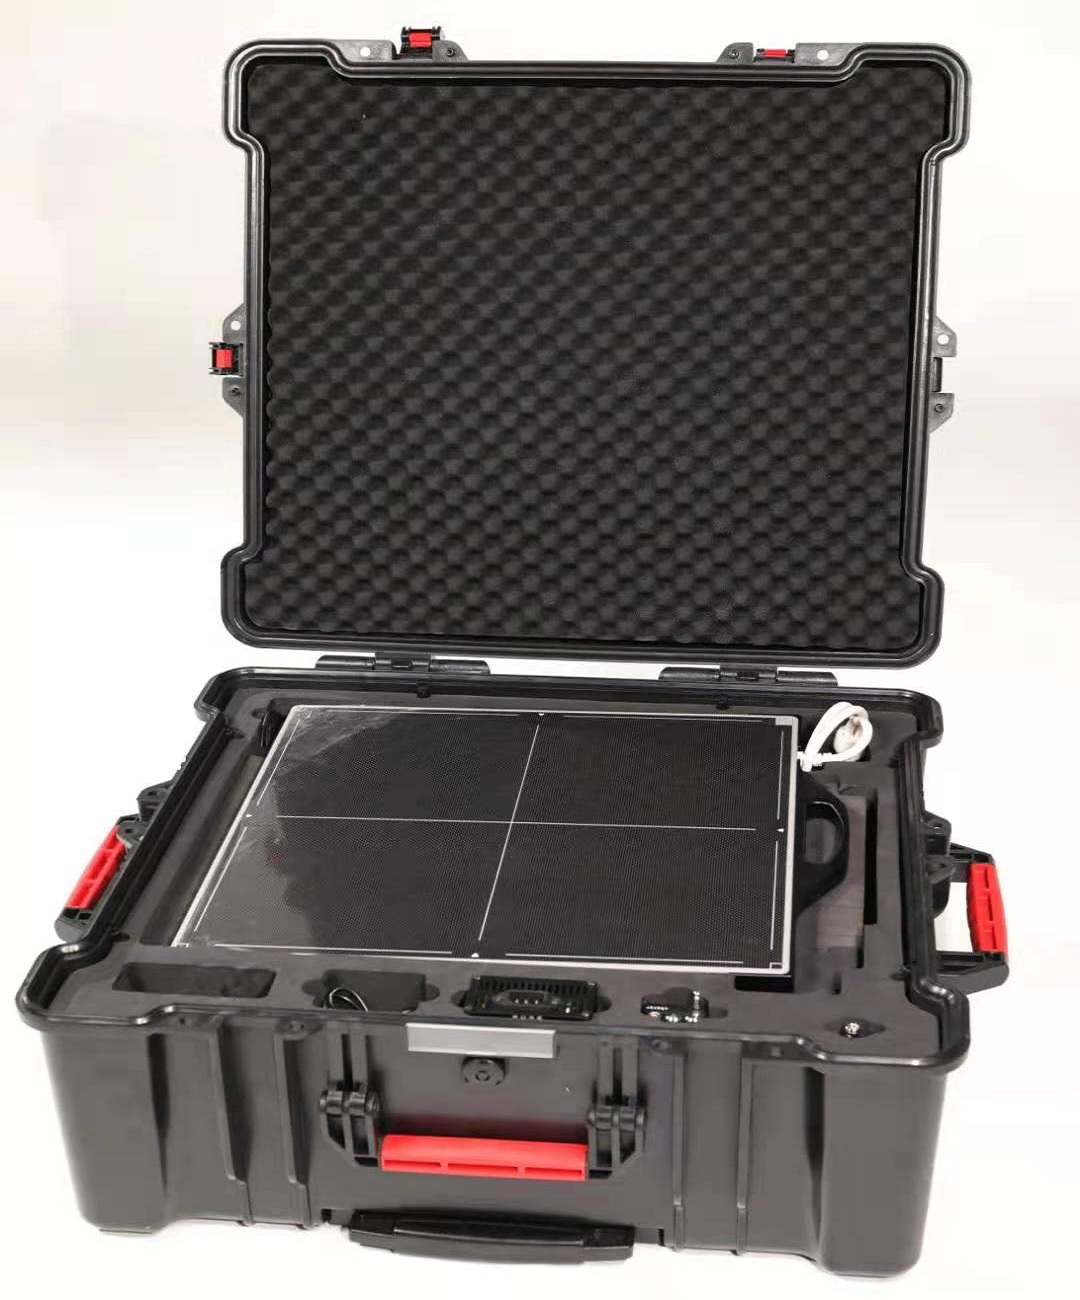 Portable X-Ray Baggage Scanner Luggage Security Inspection Machine for Airport Featured Image